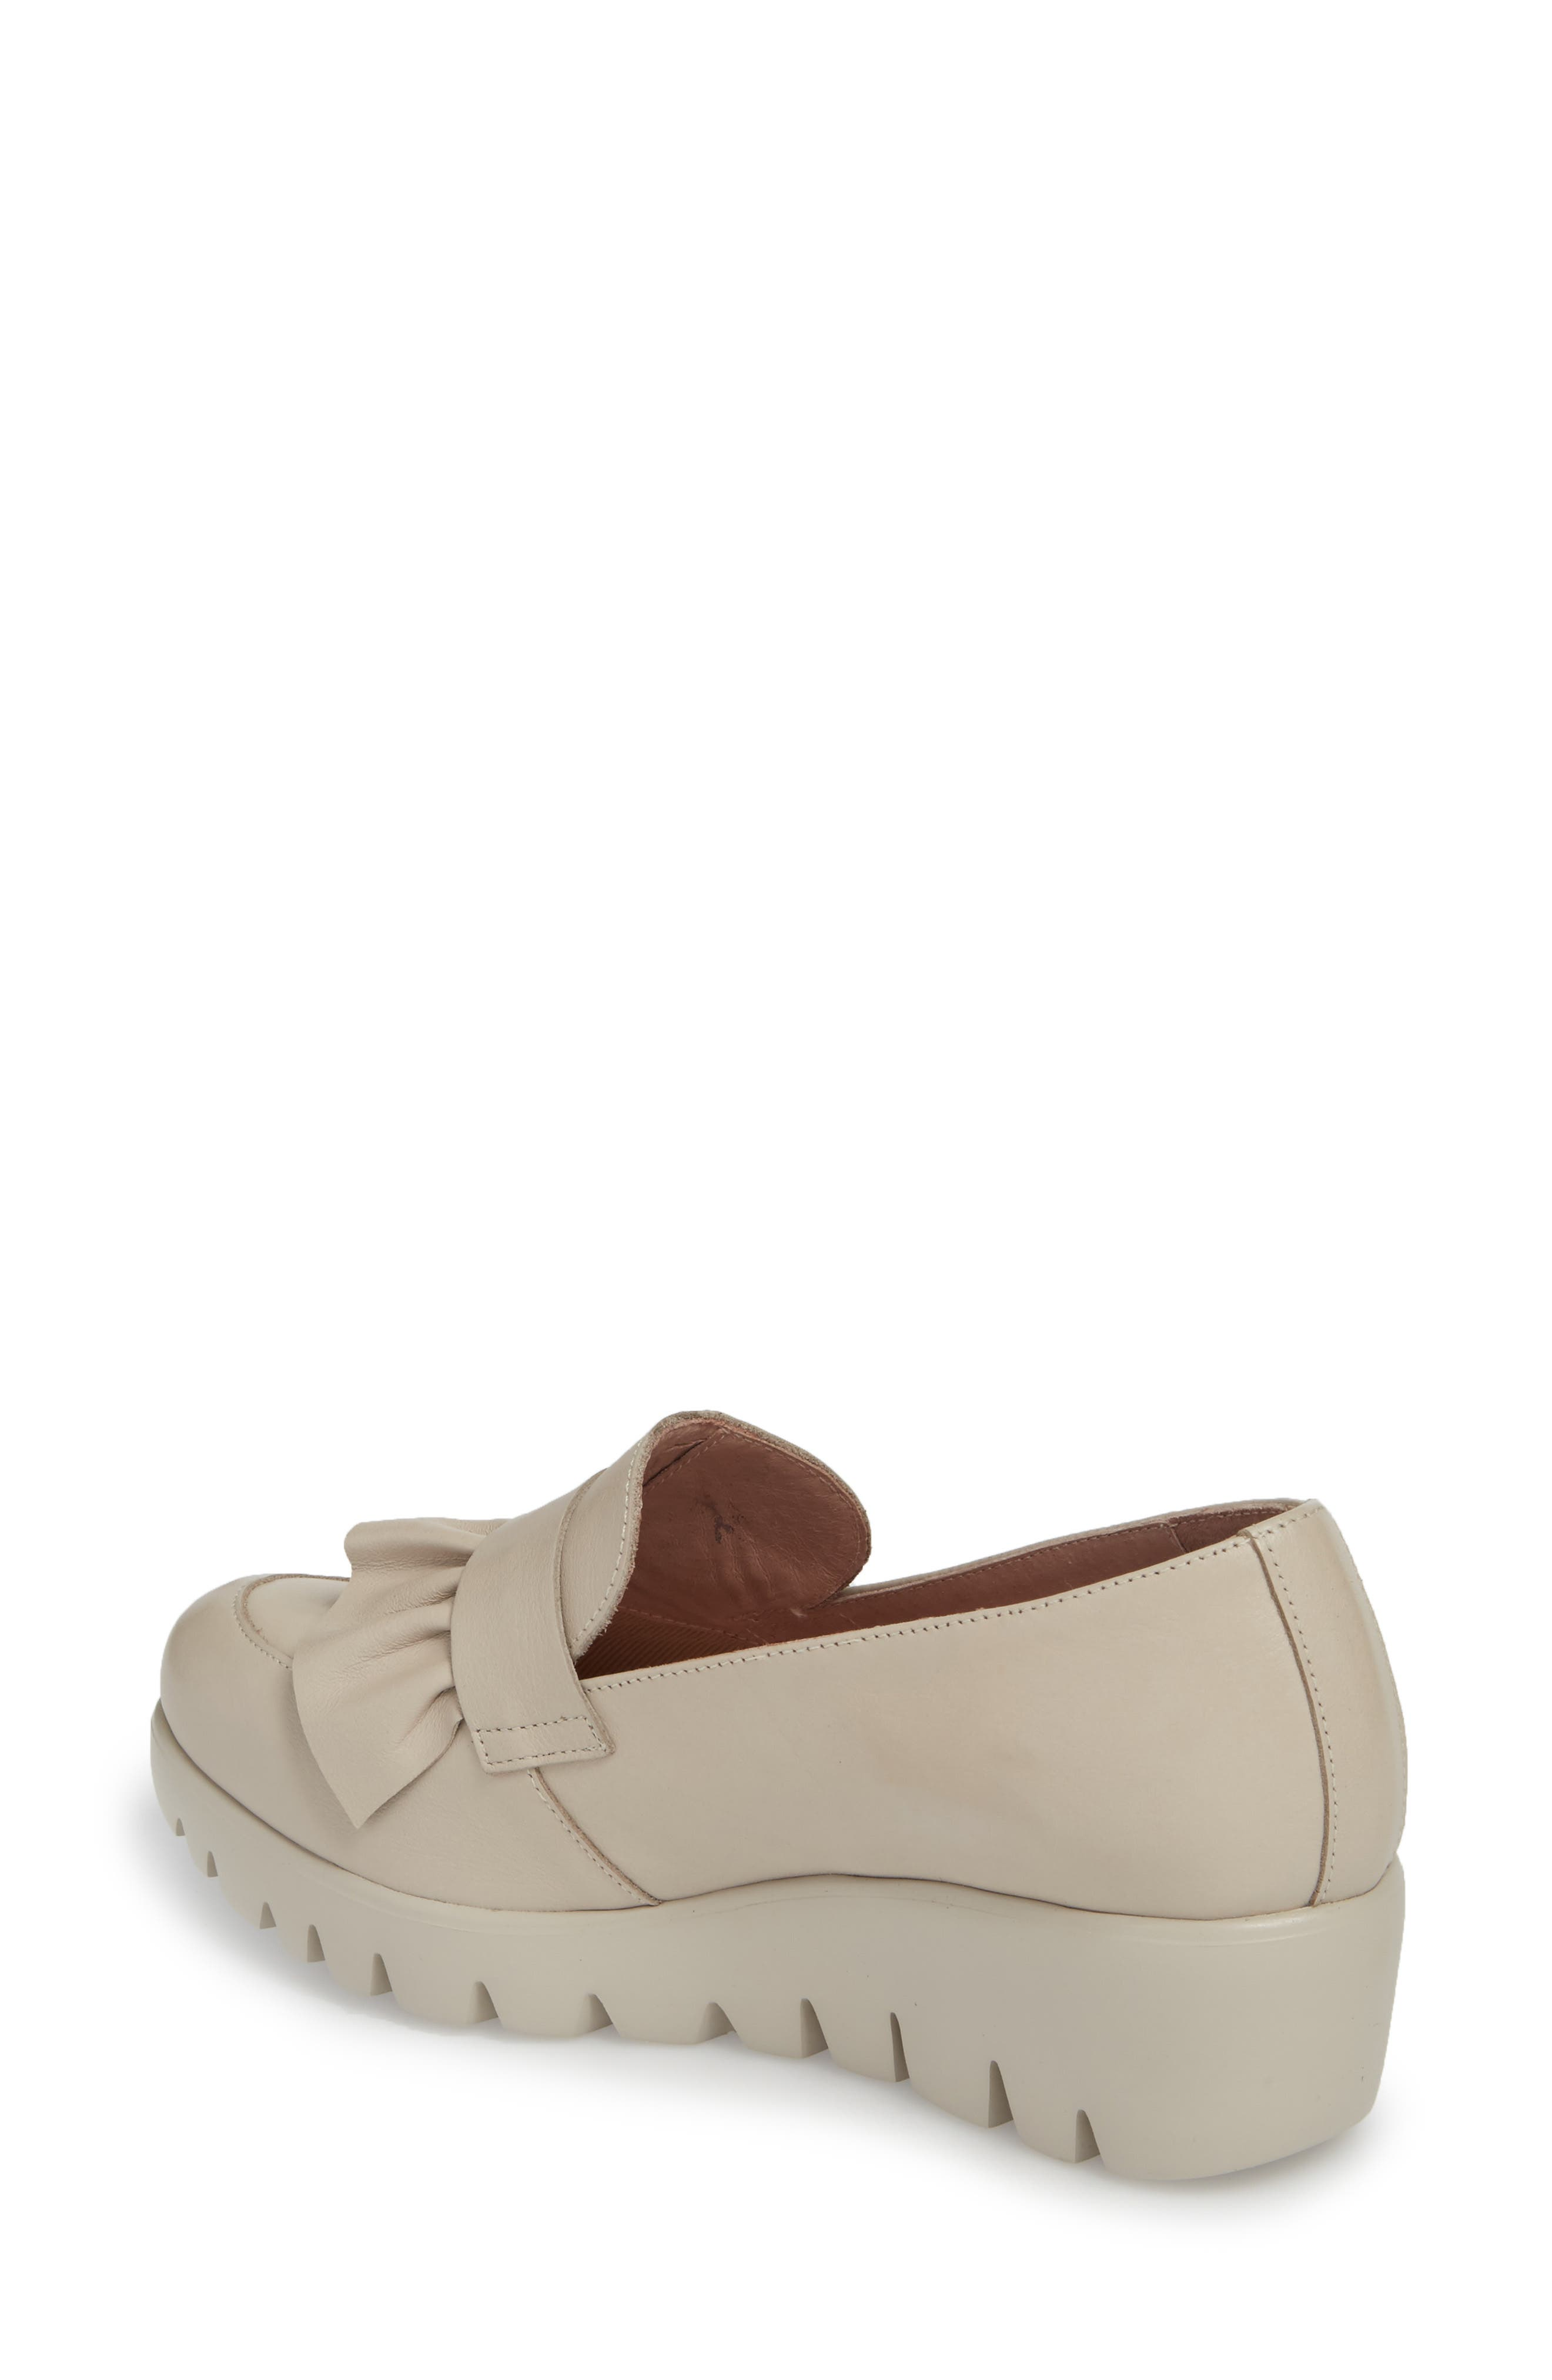 Loafer Wedge,                             Alternate thumbnail 2, color,                             LIGHT GREY LEATHER